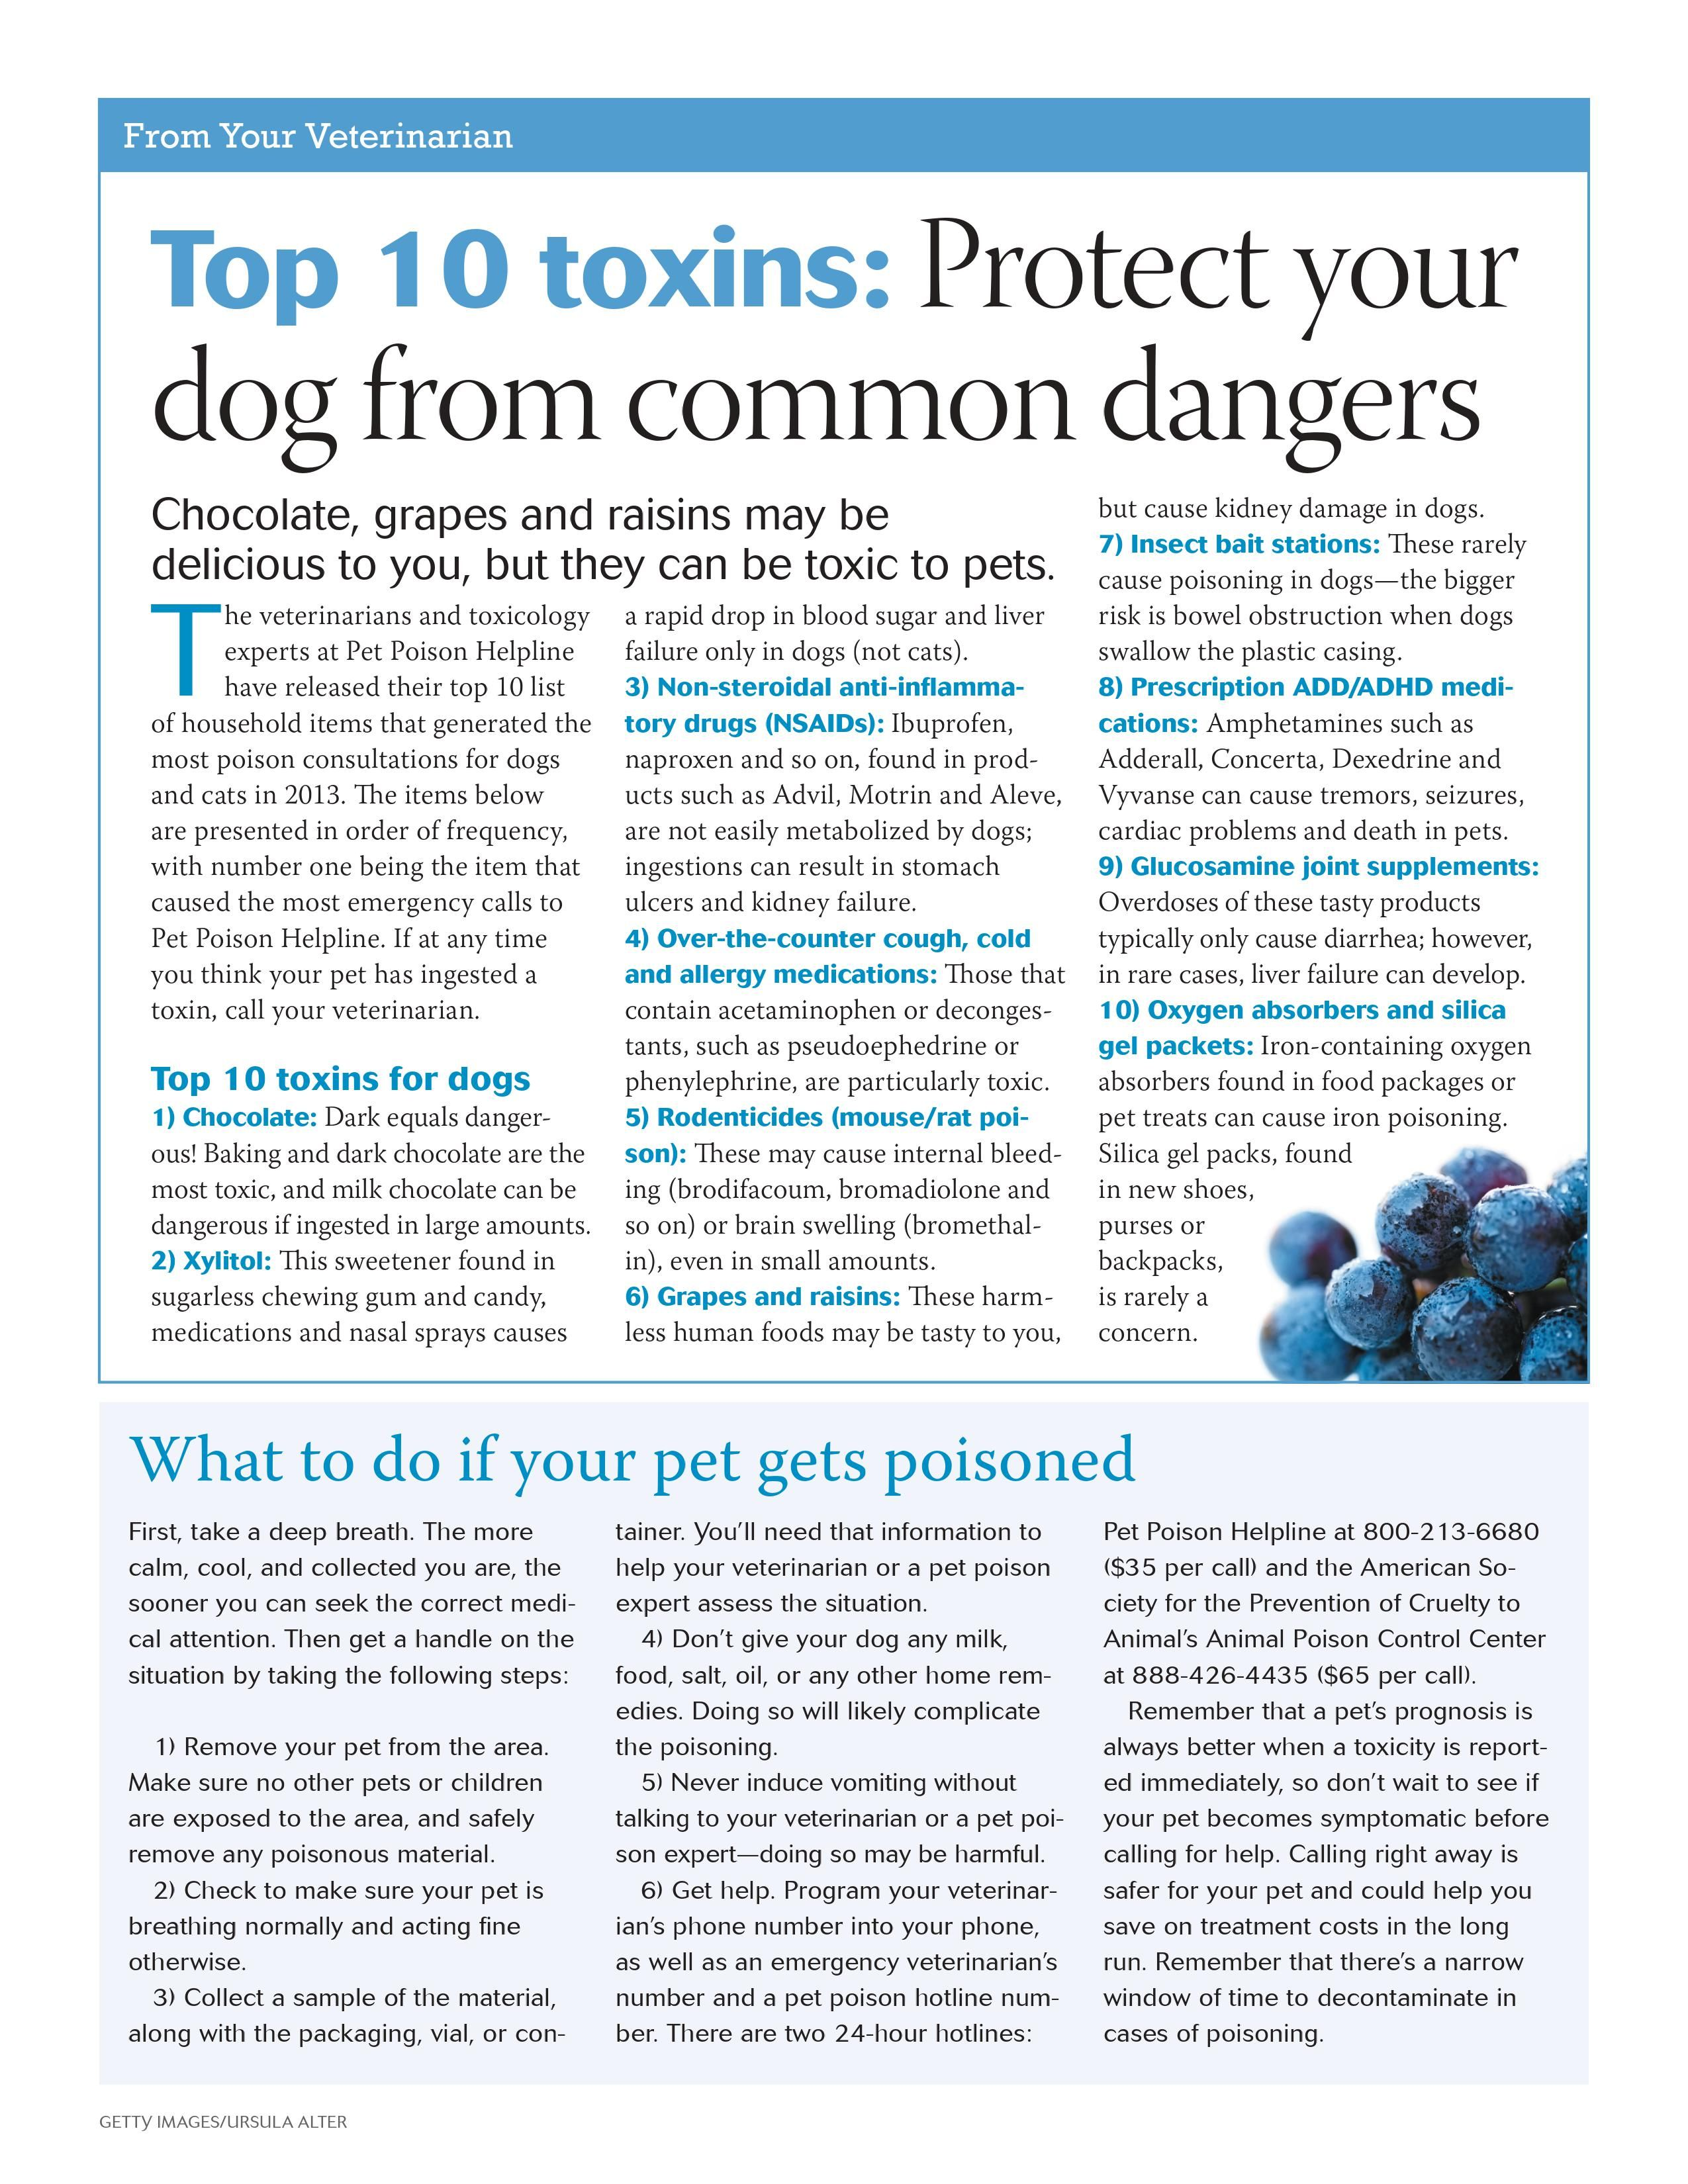 Common Dog Toxins Always Call The Pet Poison Helpline 800 213 6680 Or Your Vet Immediately Dvm360 Dog Wellness Pet Poison Helpline Pet Health Dogs